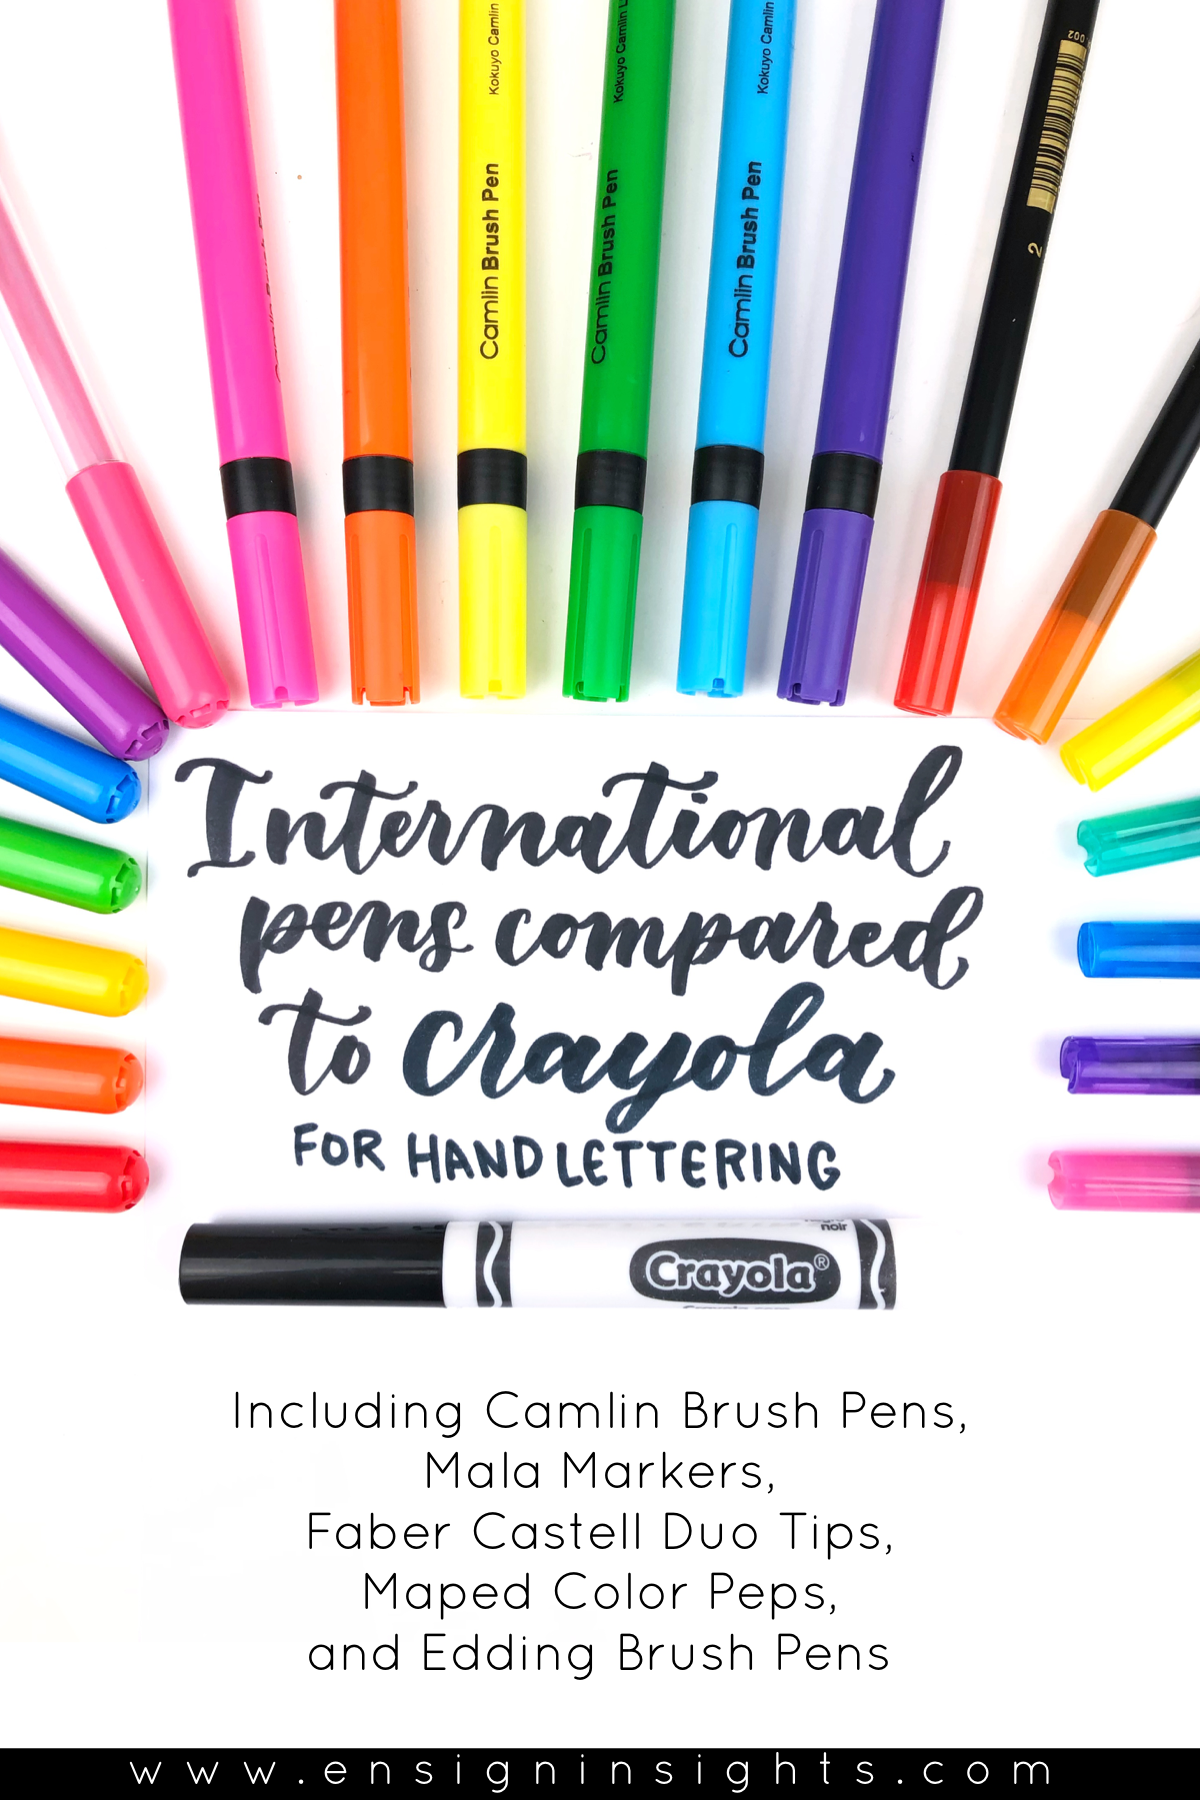 Crayola Markers for Hand Lettering Compared to International Pens